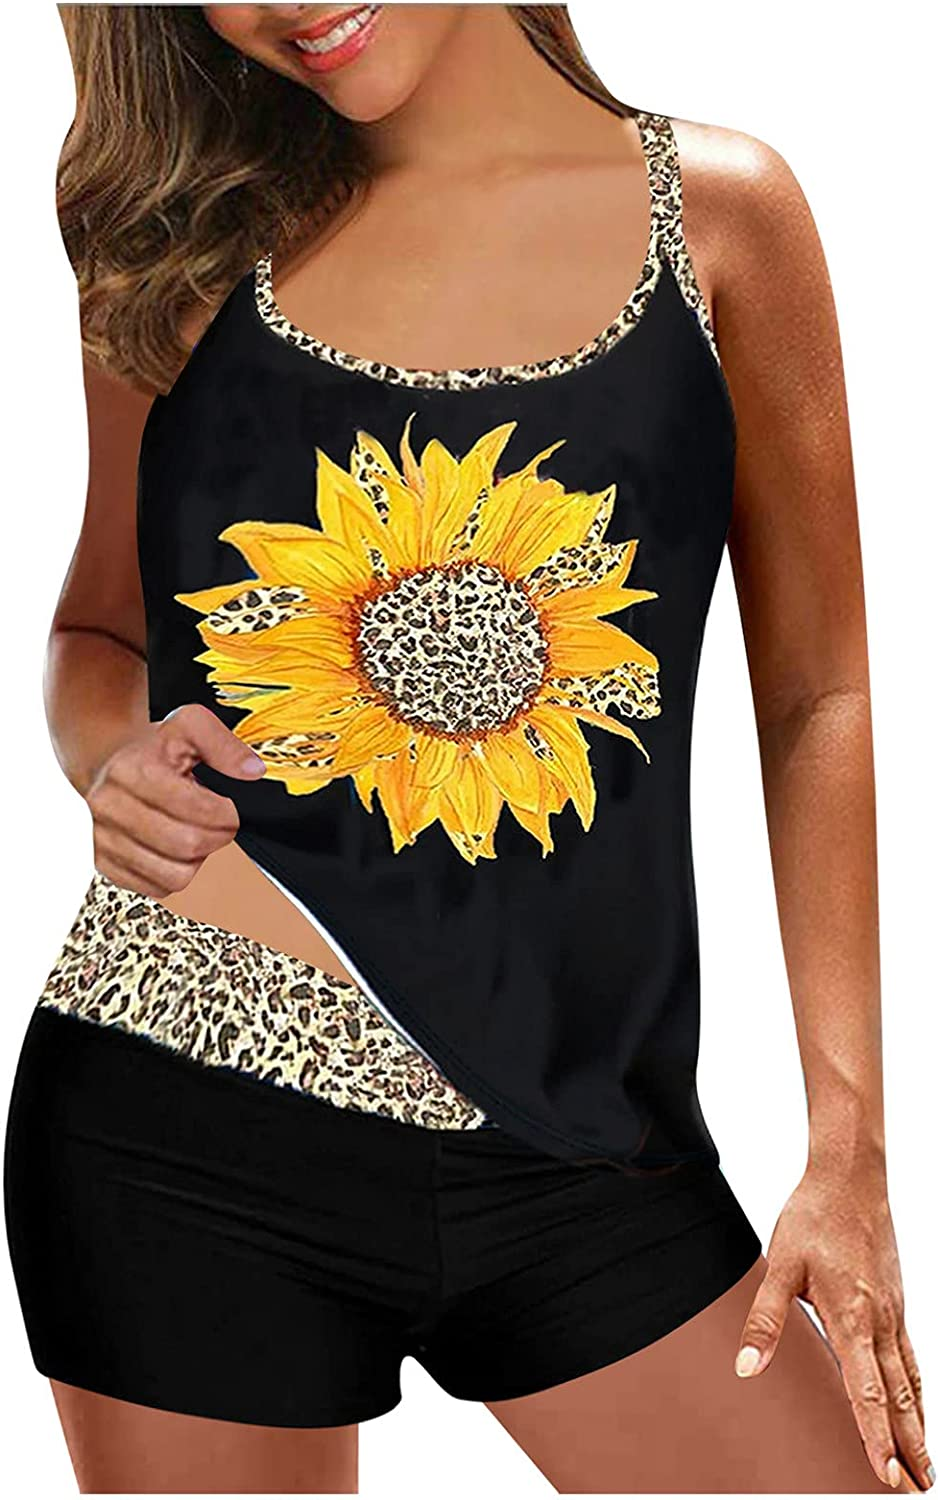 BEUU Plus Size Swimsuits for Women Deep V Backless Floral Swimwear Summer Two Piece Tankini Boy Shorts Bathing Suits